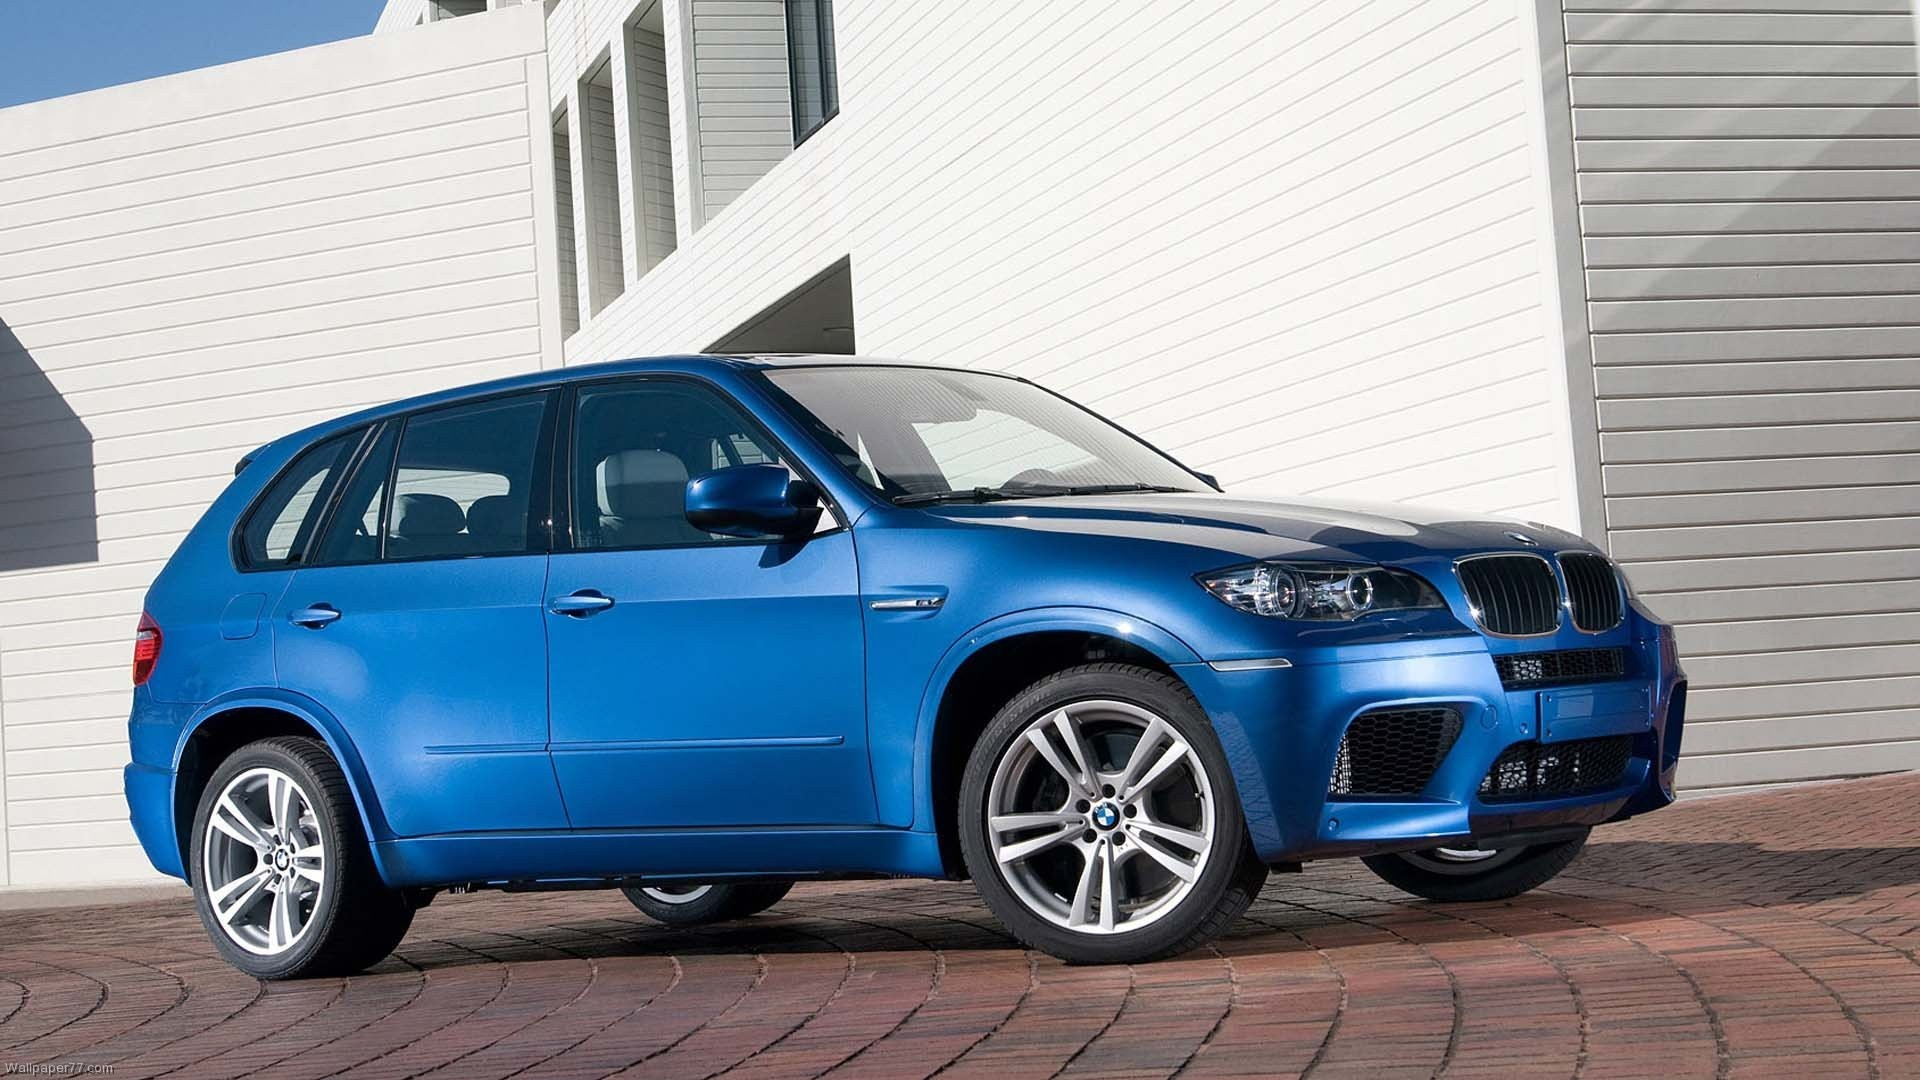 Greats BMW Car Blue In Photos E2u With BMW Car Blue New On Wallpapers